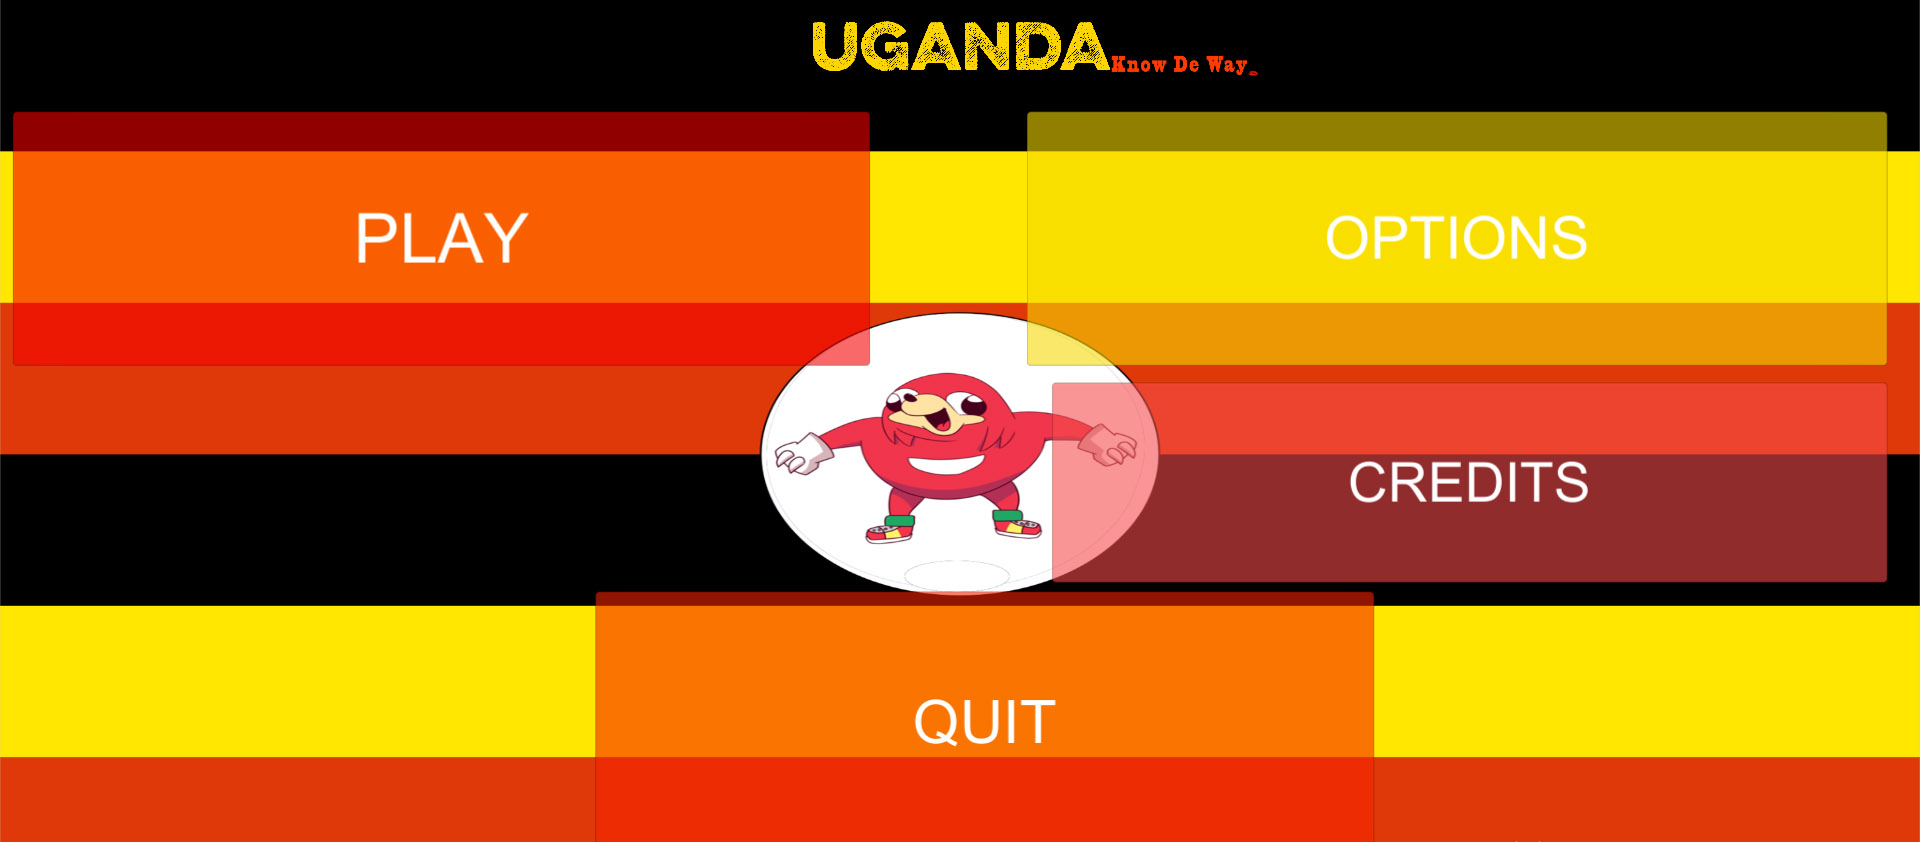 Uganda know de way screenshot